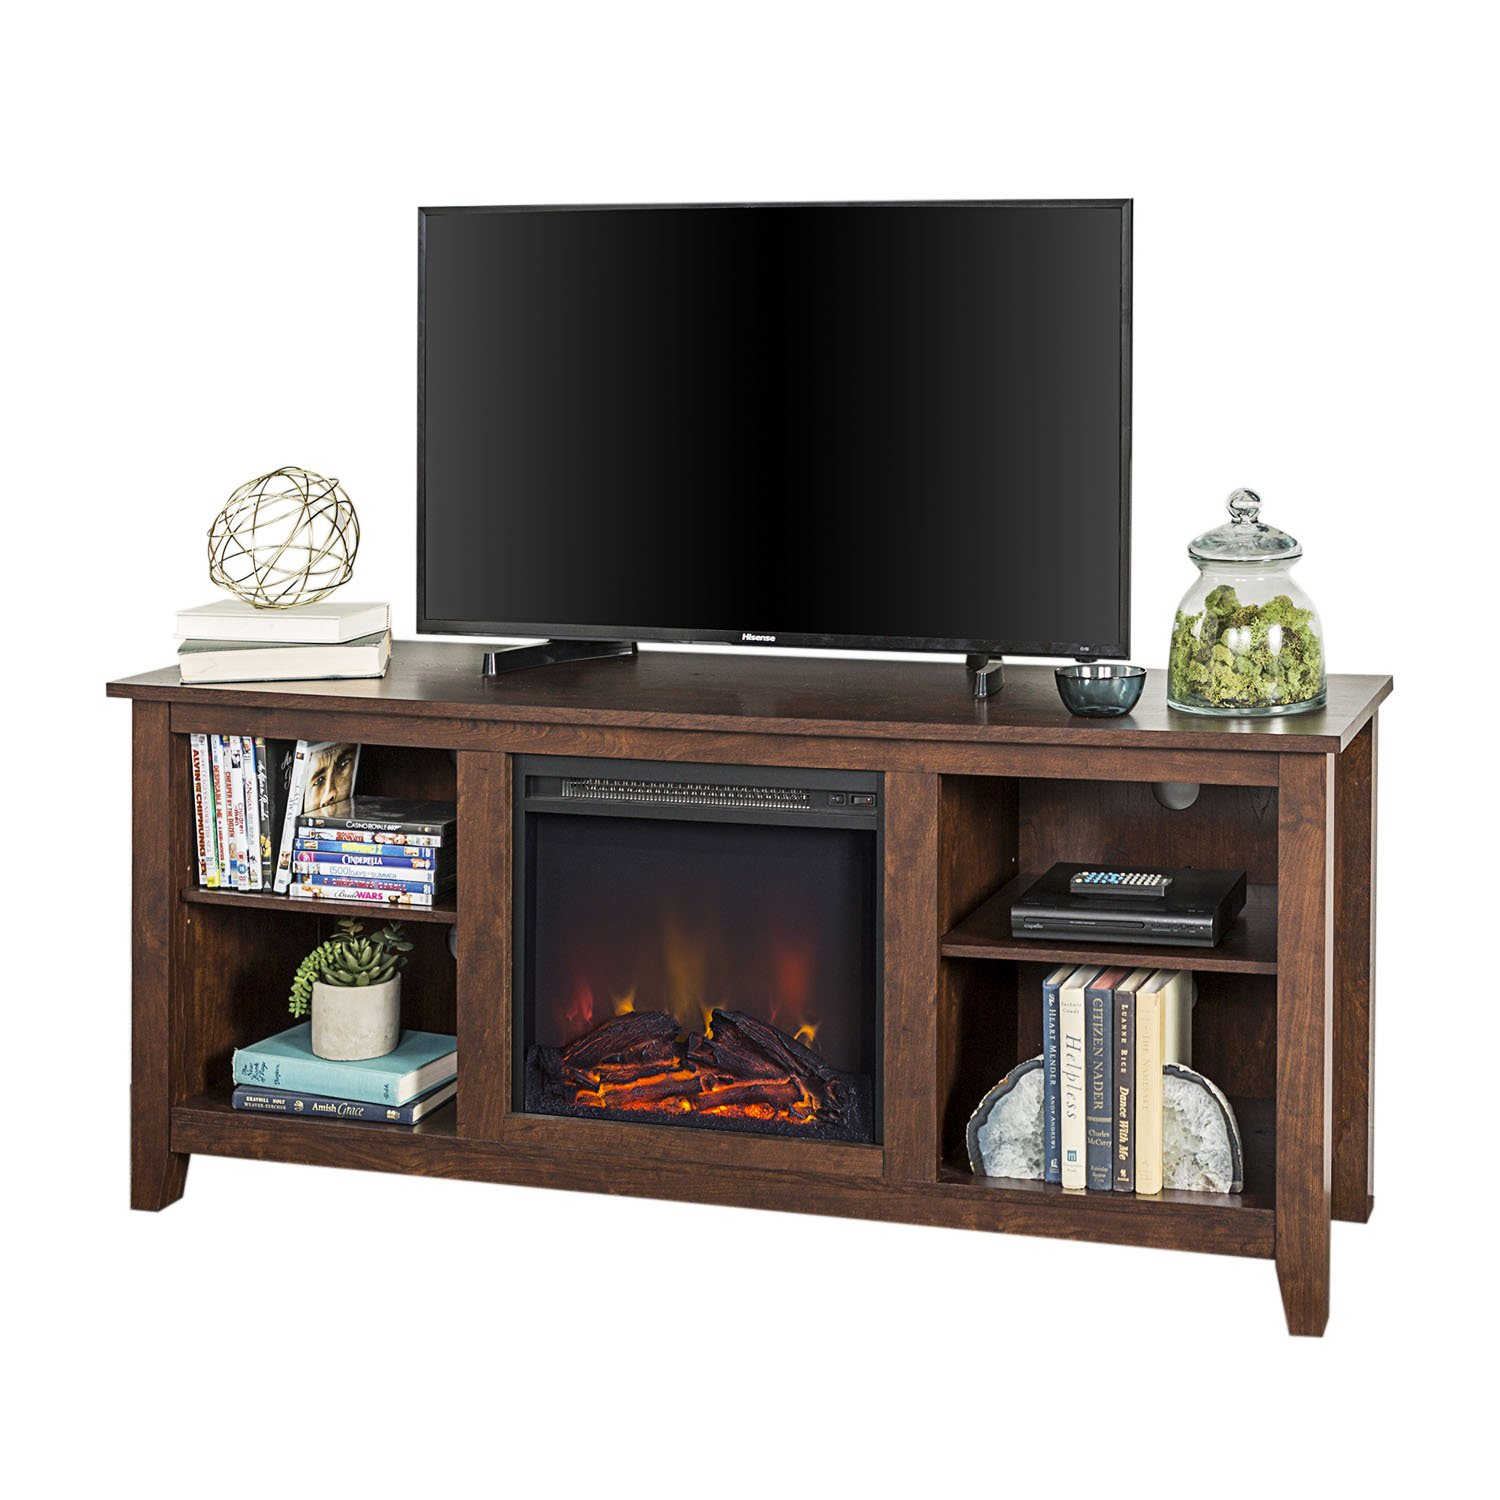 Walker Edison Furniture Company 58 Traditional Farmhouse Electric Fireplace TV Stand in Brown